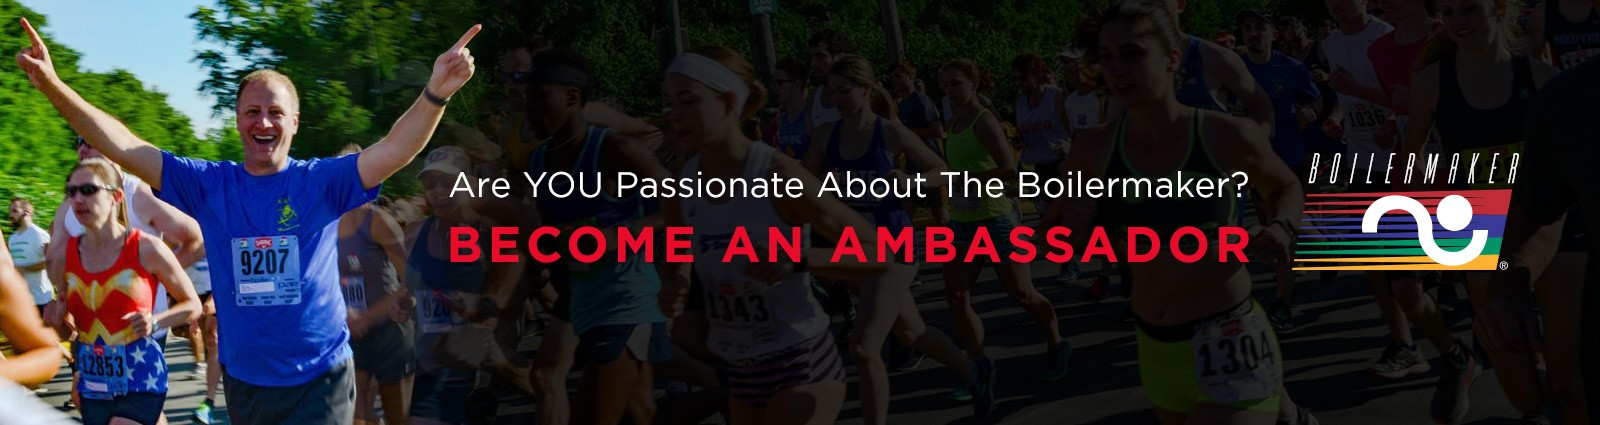 Are YOU Passionate About The Boilermaker? Become an Ambassador!